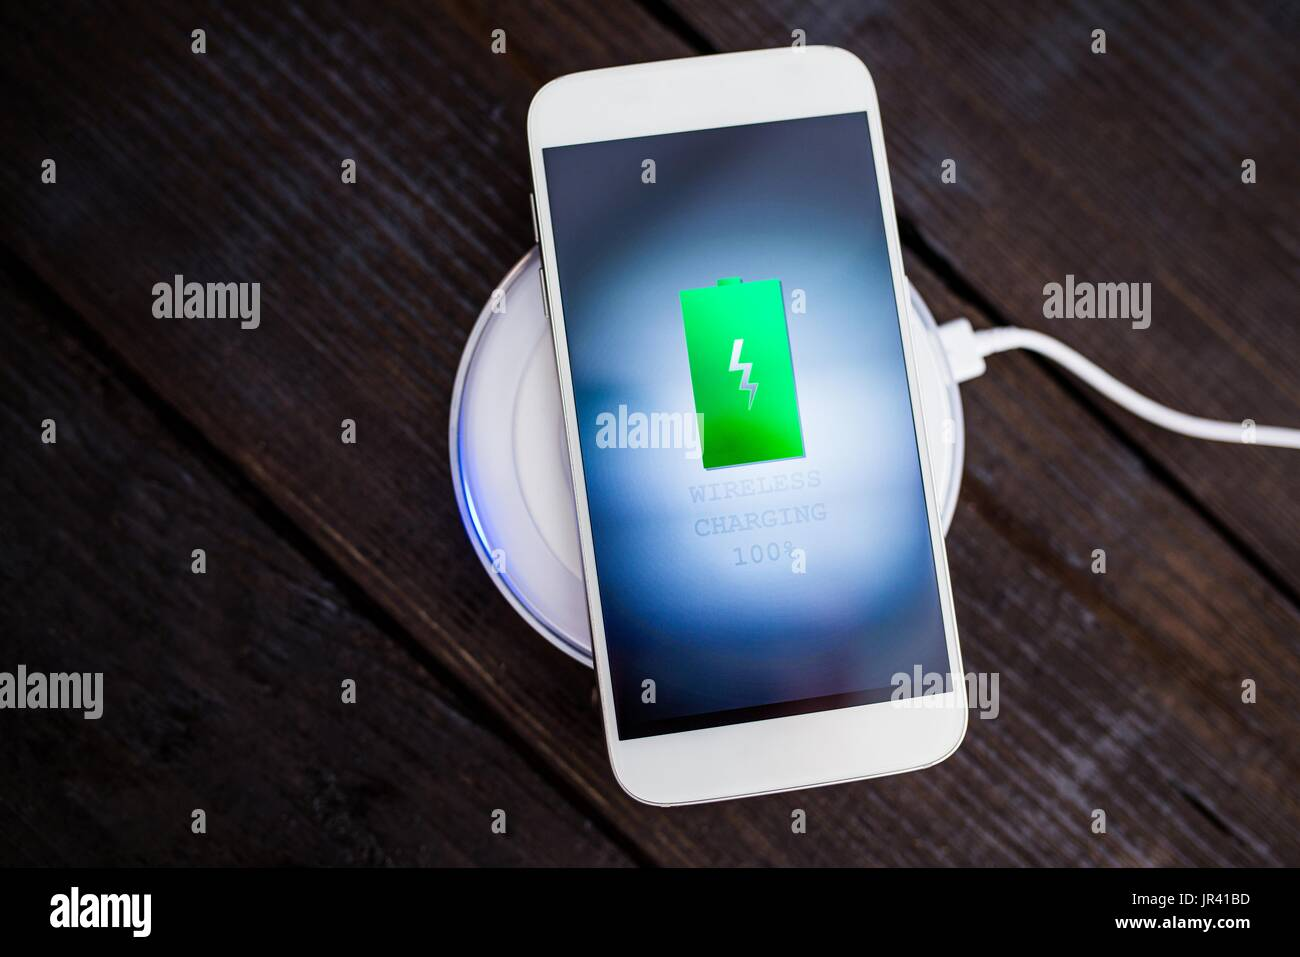 smartphone battery icon stock photos smartphone battery icon stock images alamy. Black Bedroom Furniture Sets. Home Design Ideas